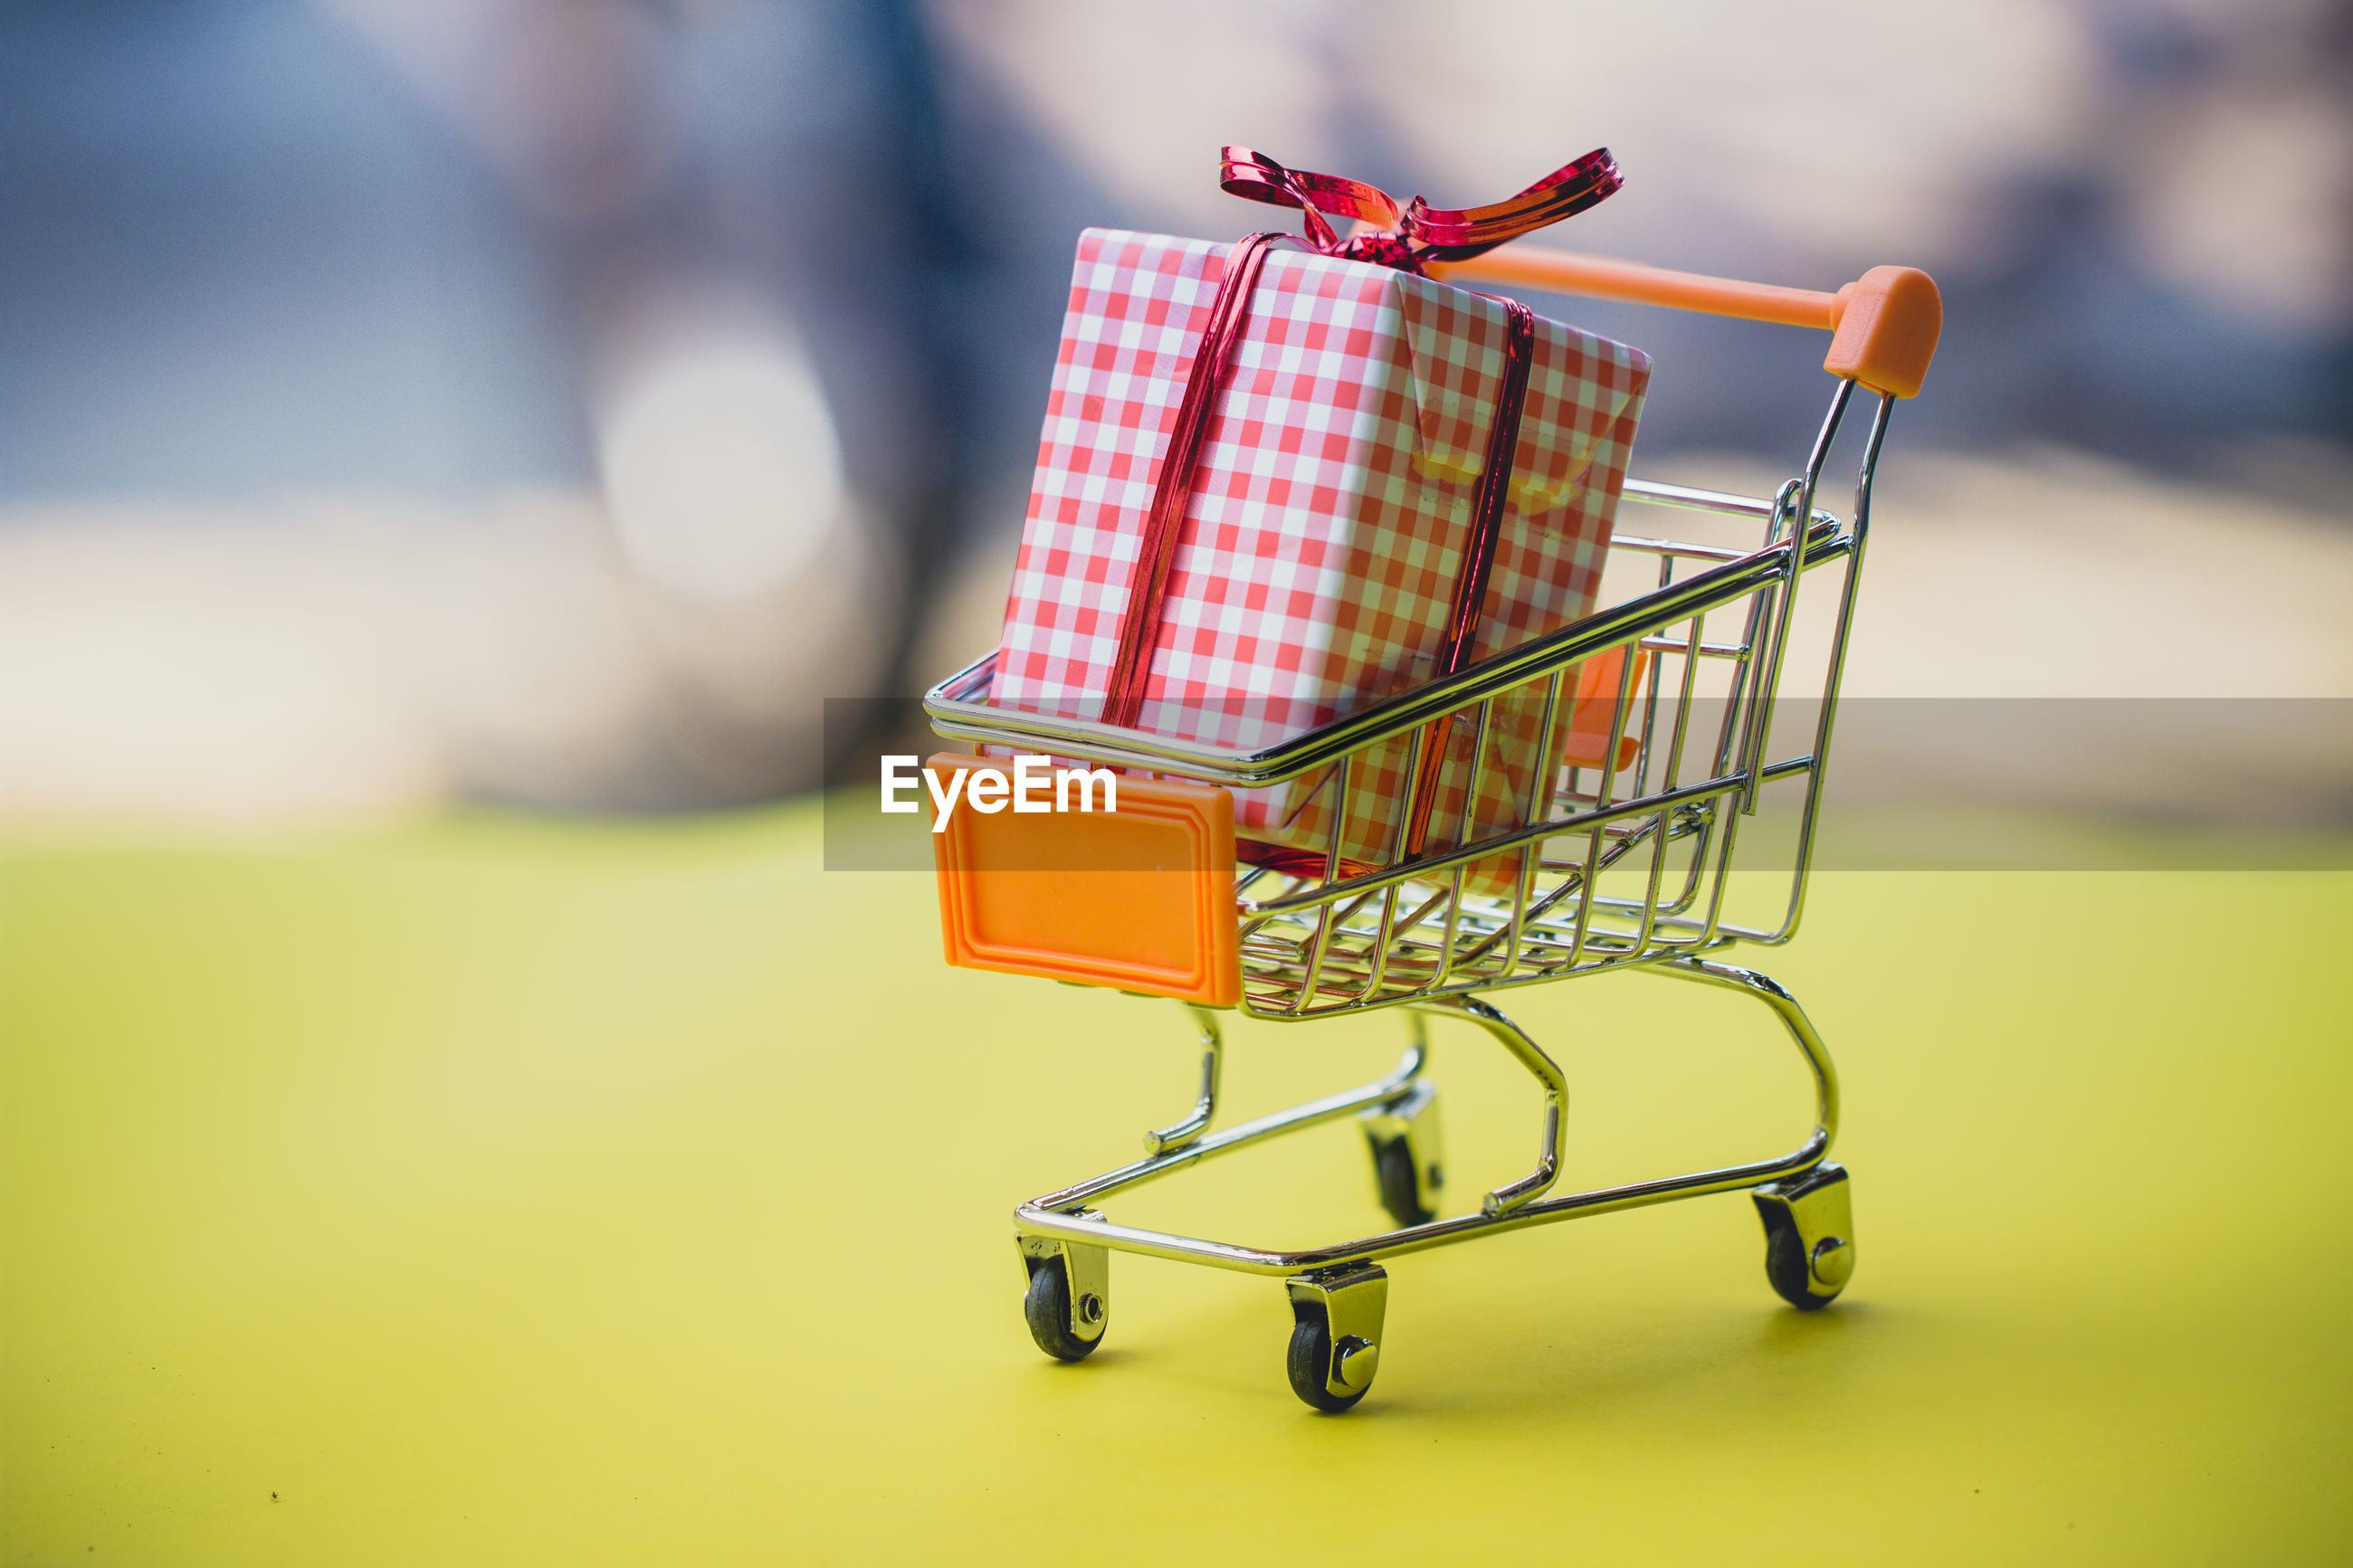 Close-up of shopping cart with gift box on table